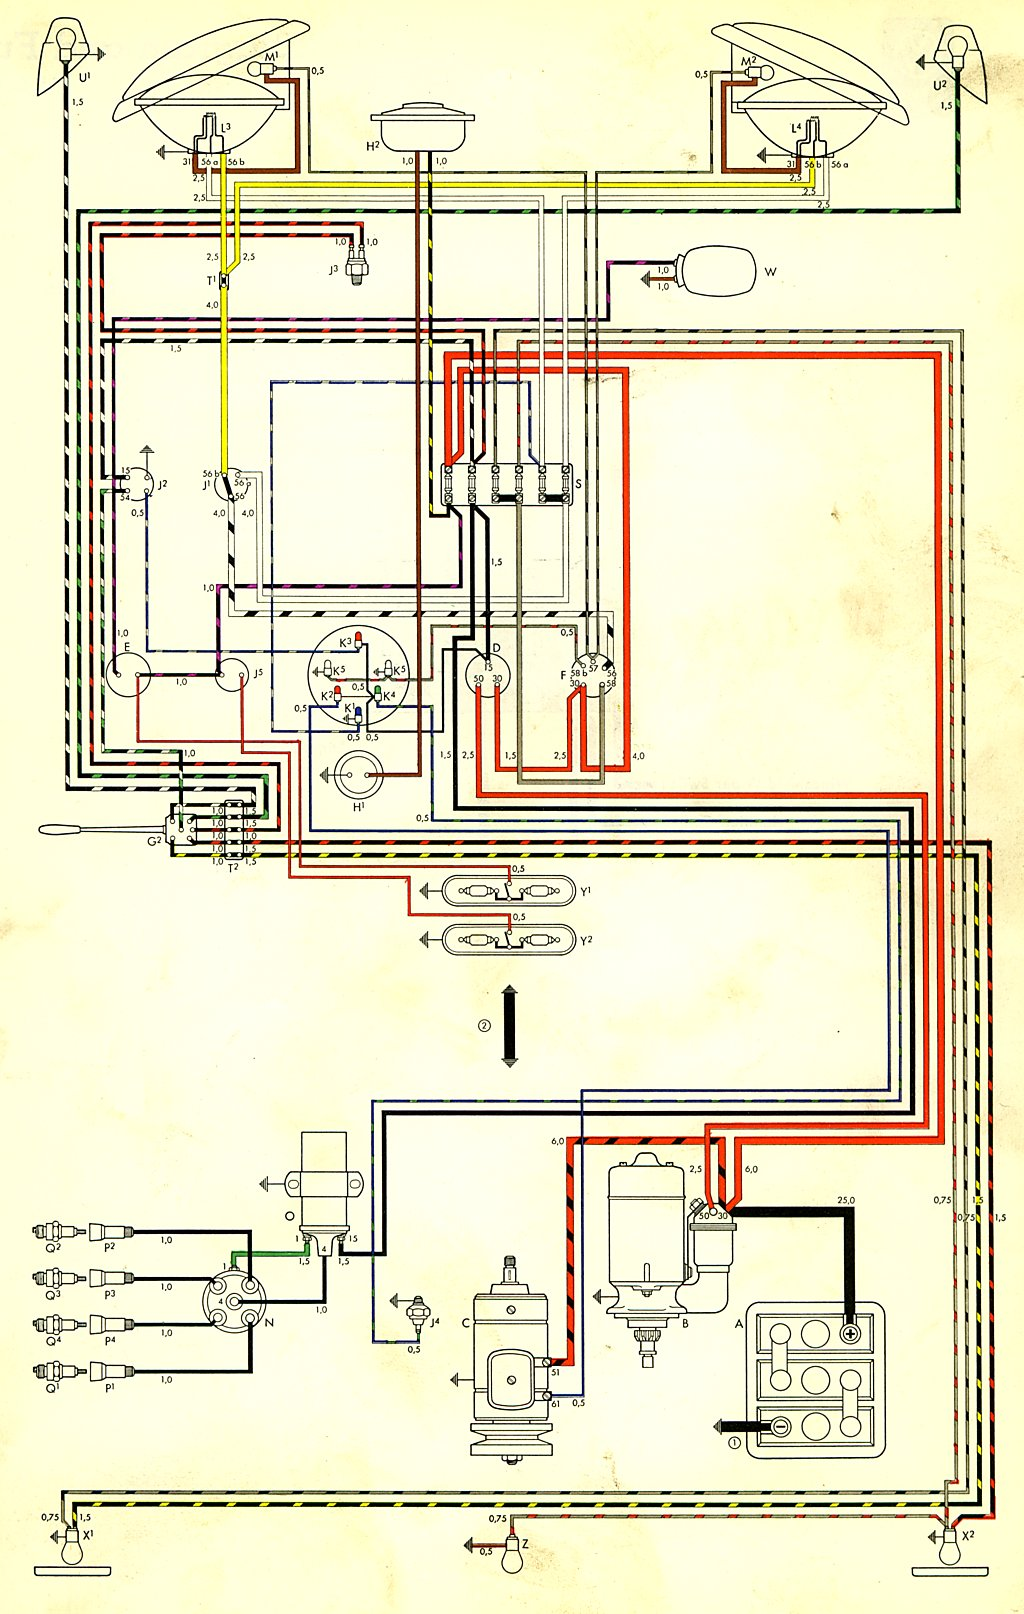 1968 69 Bus Wiring Diagram | Wiring Schematic Diagram Usa Trains Wiring Diagrams on train engine diagrams, train seats, train drawings, train battery, train horn diagrams, train suspension, train parts,